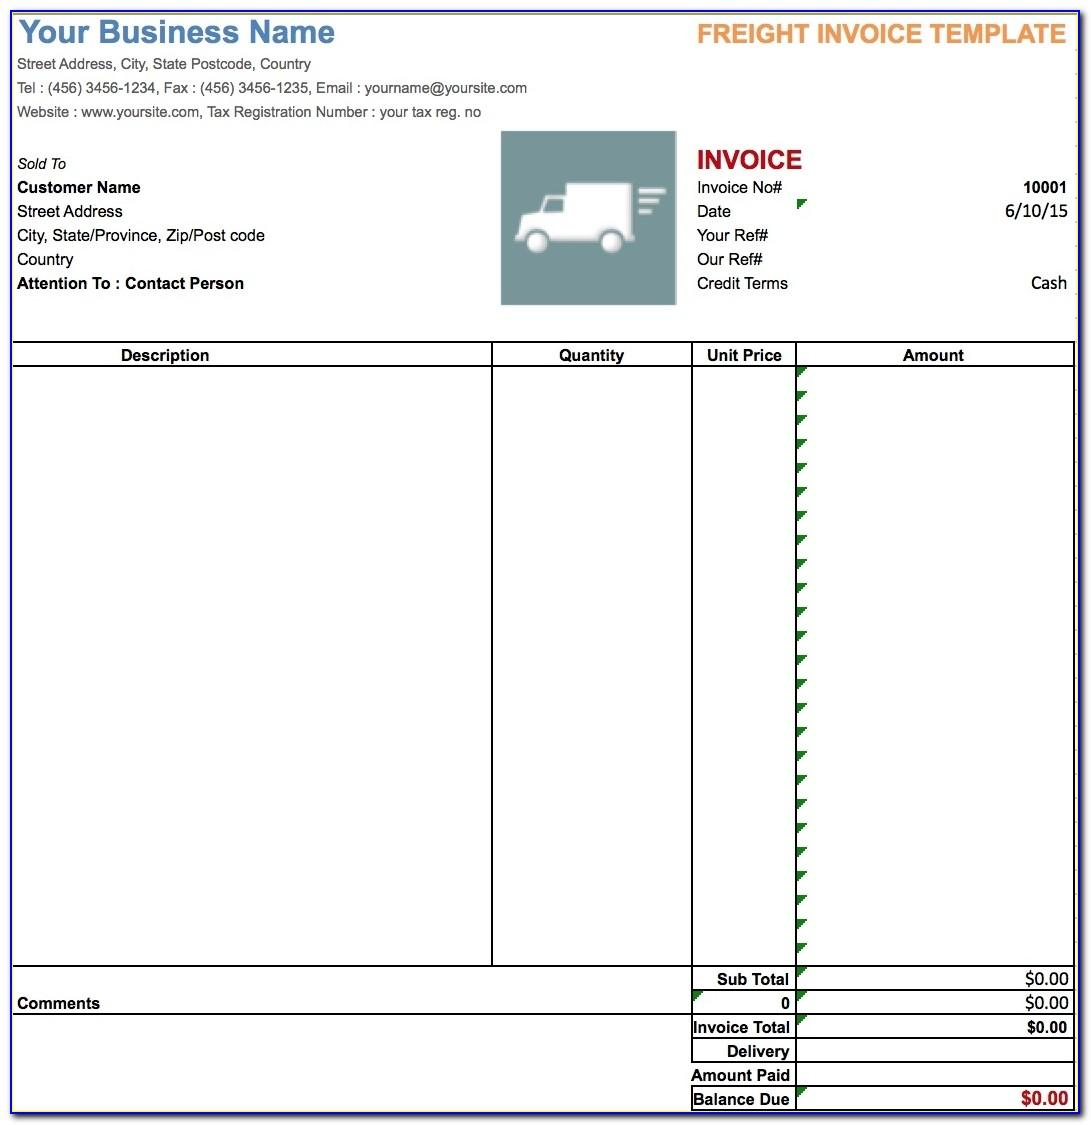 Freight Invoice Template Free